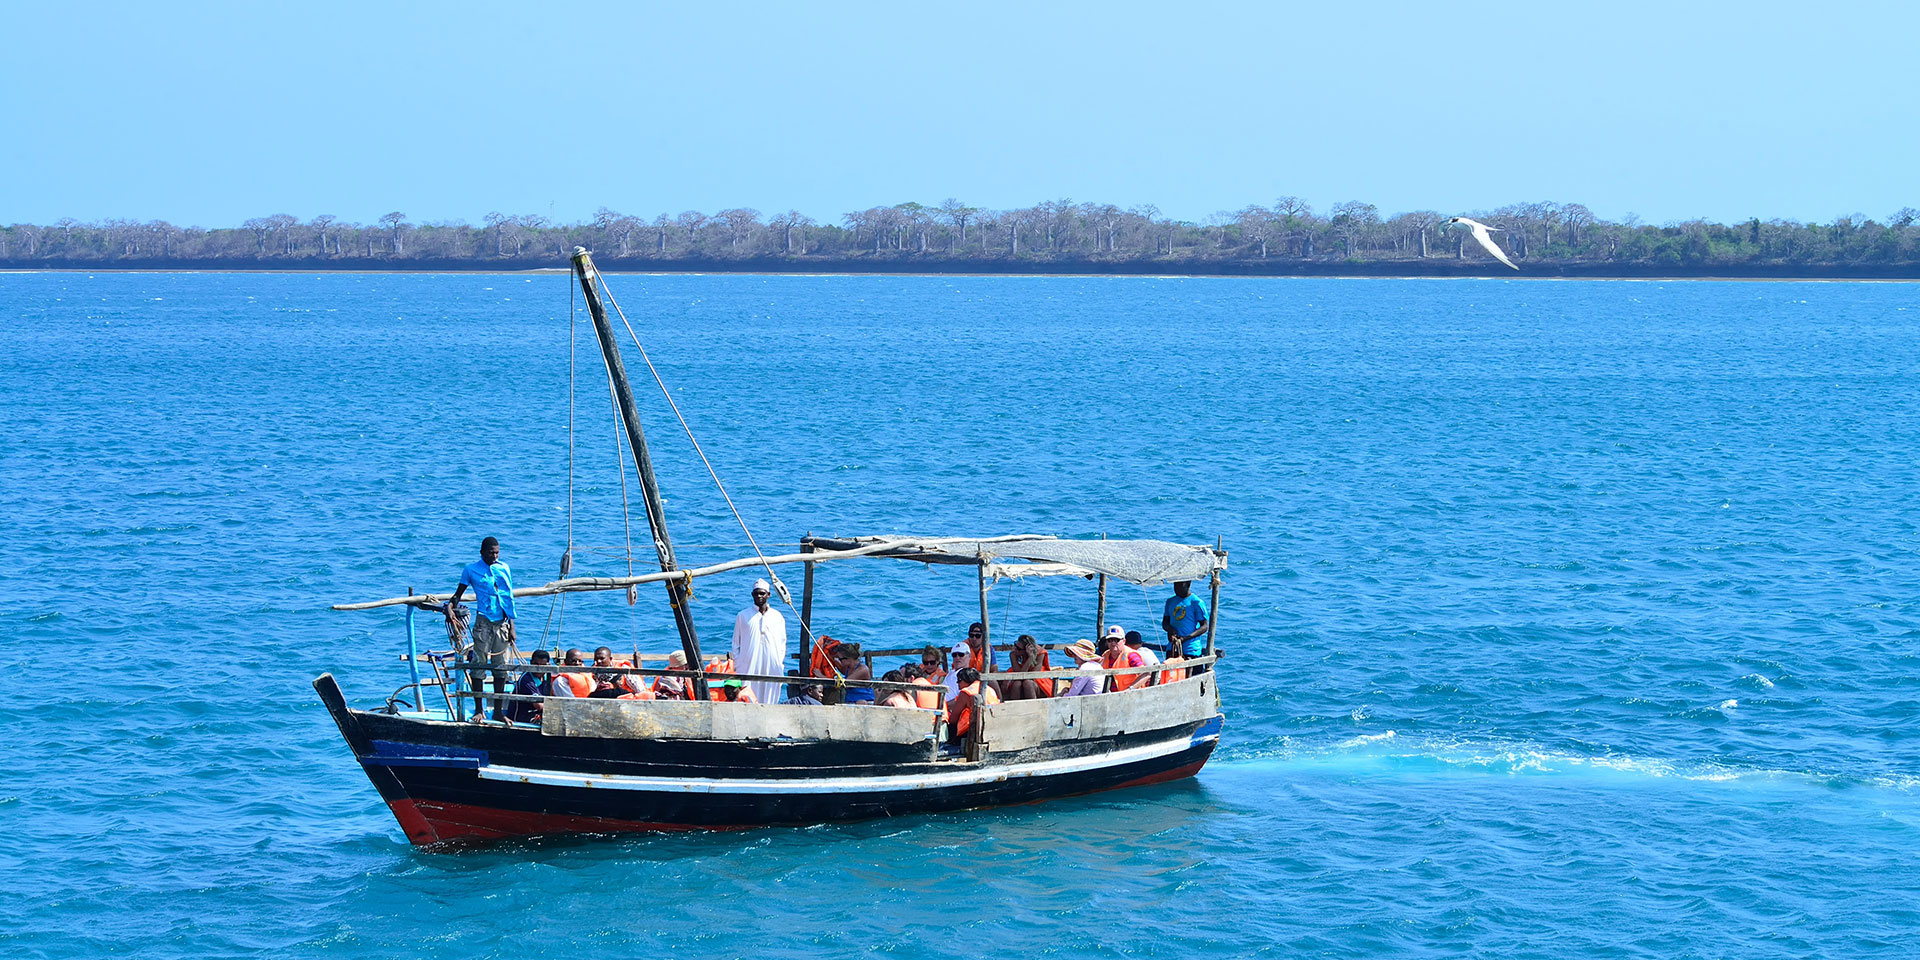 1 day Wasini Island Snorkling in Kenya with Seafood Lunch